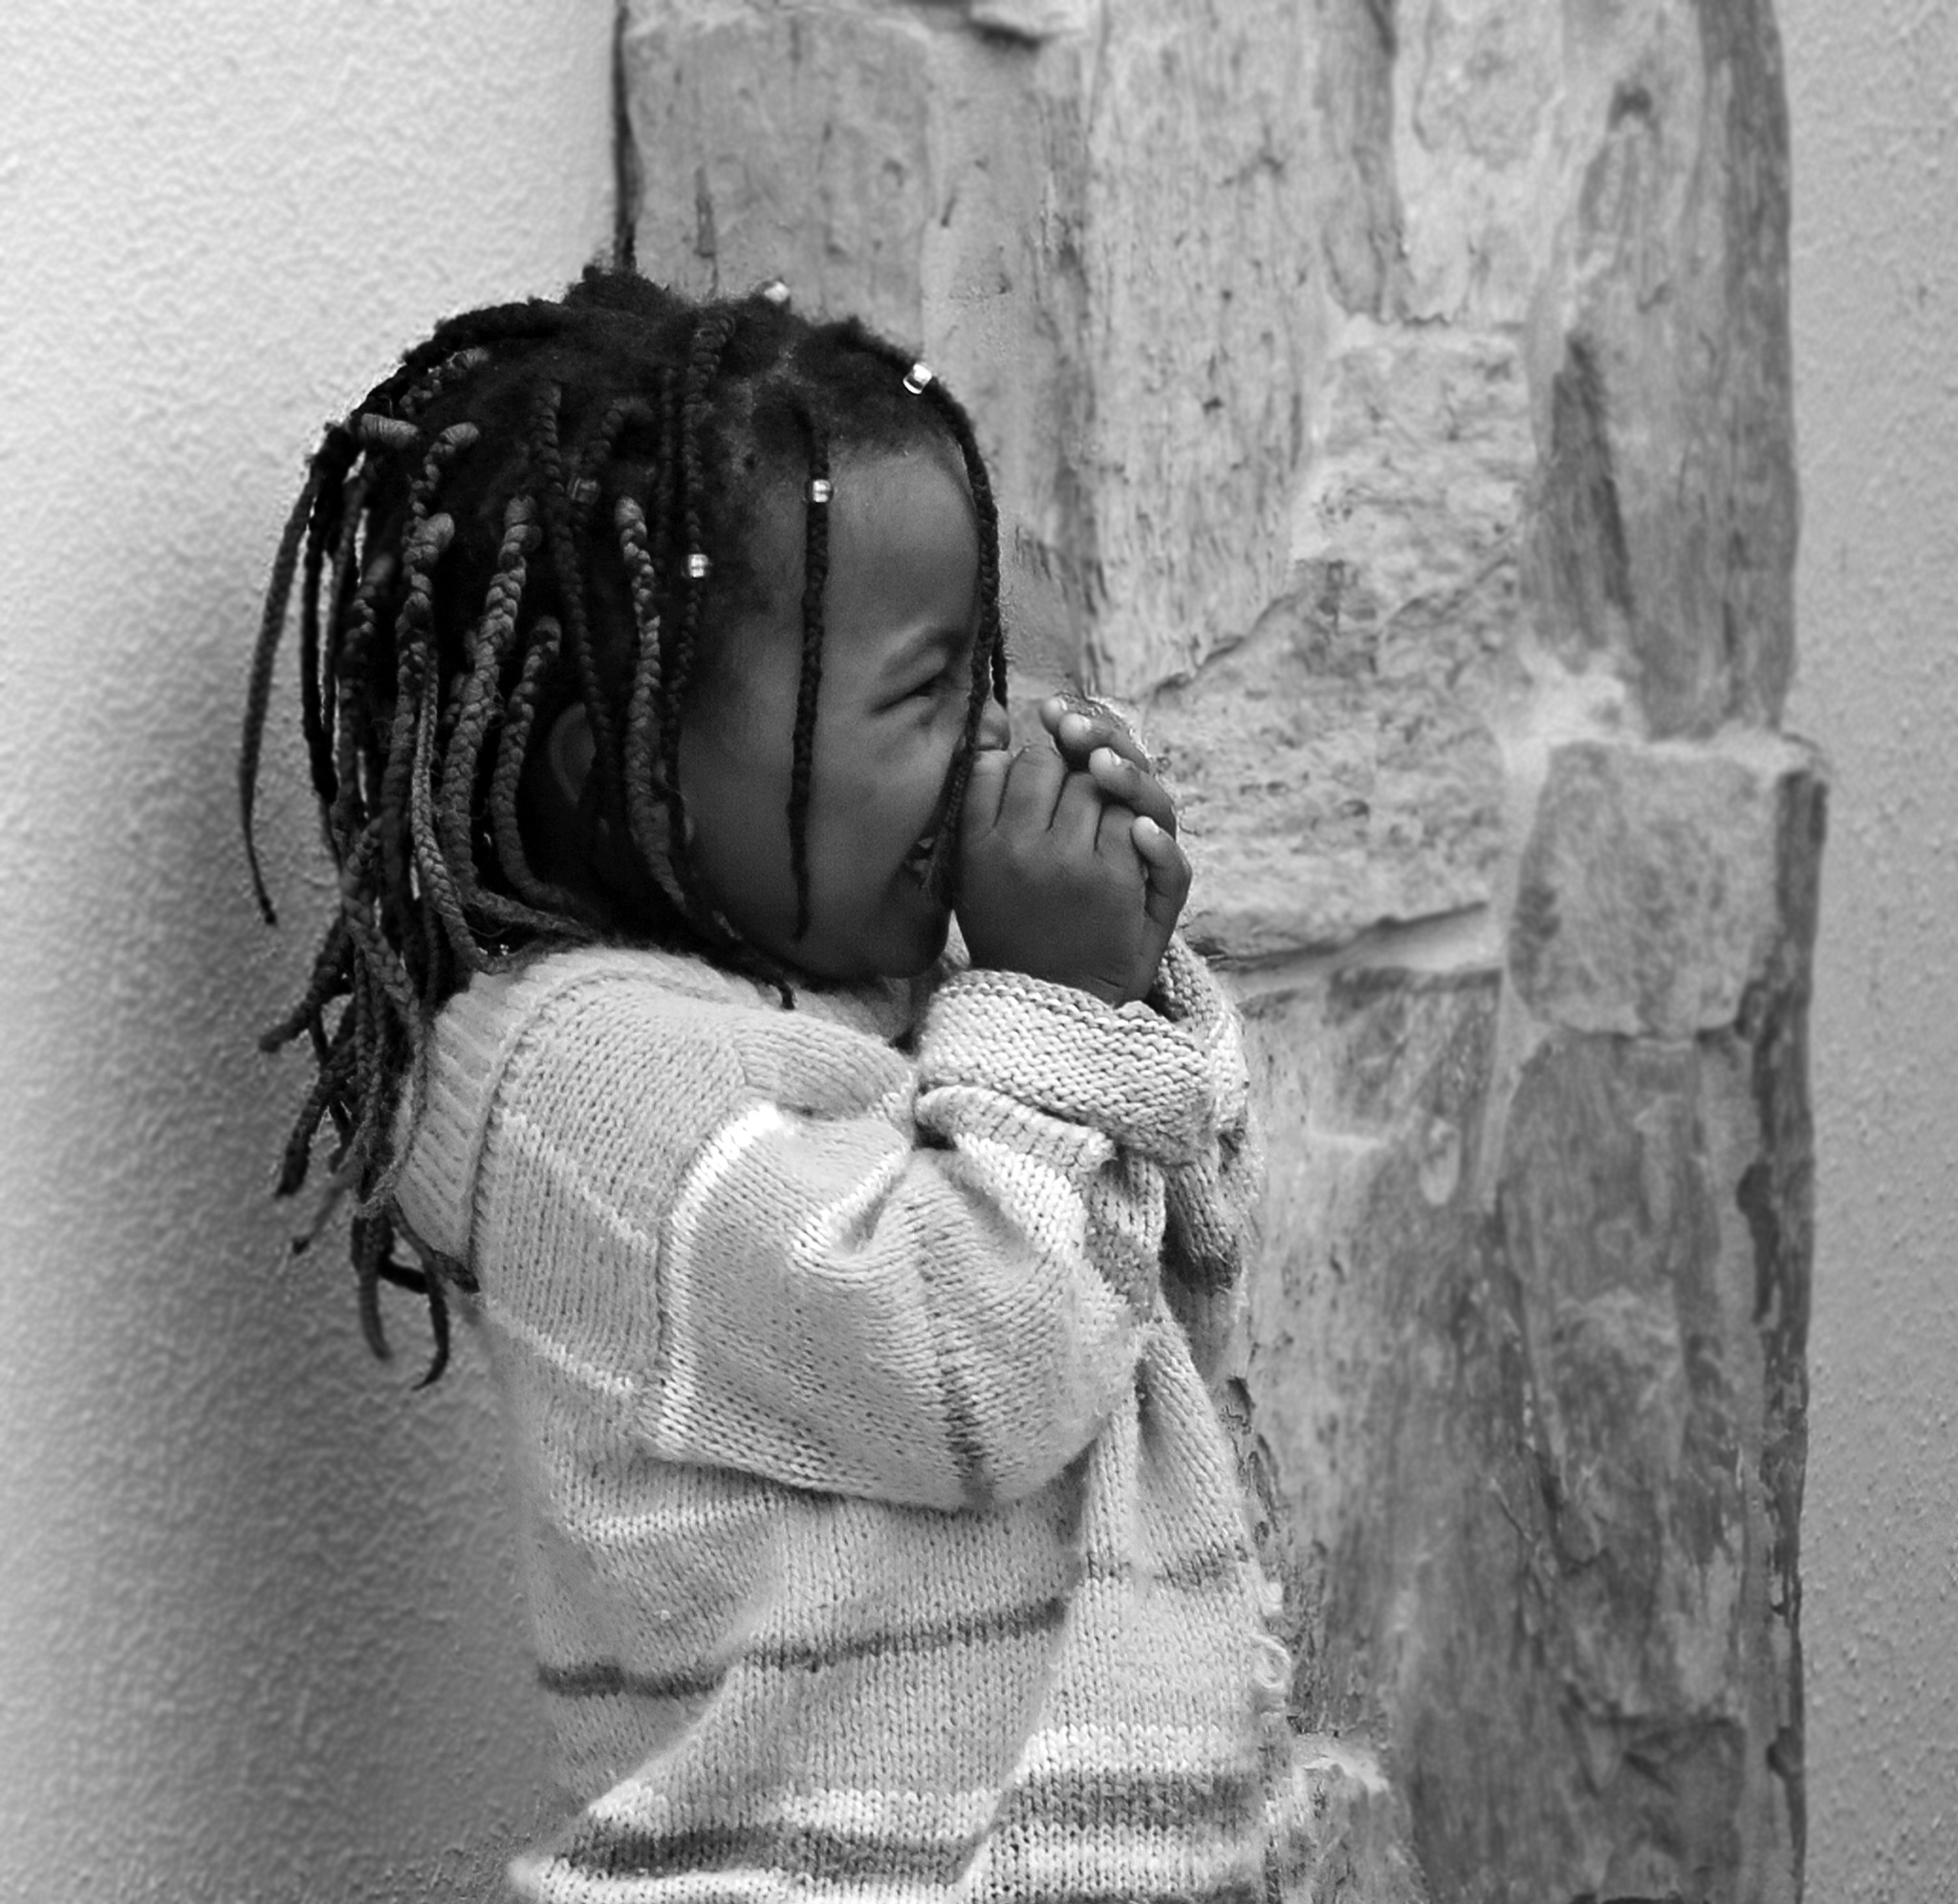 A happy child of Africa by susan.burger.10